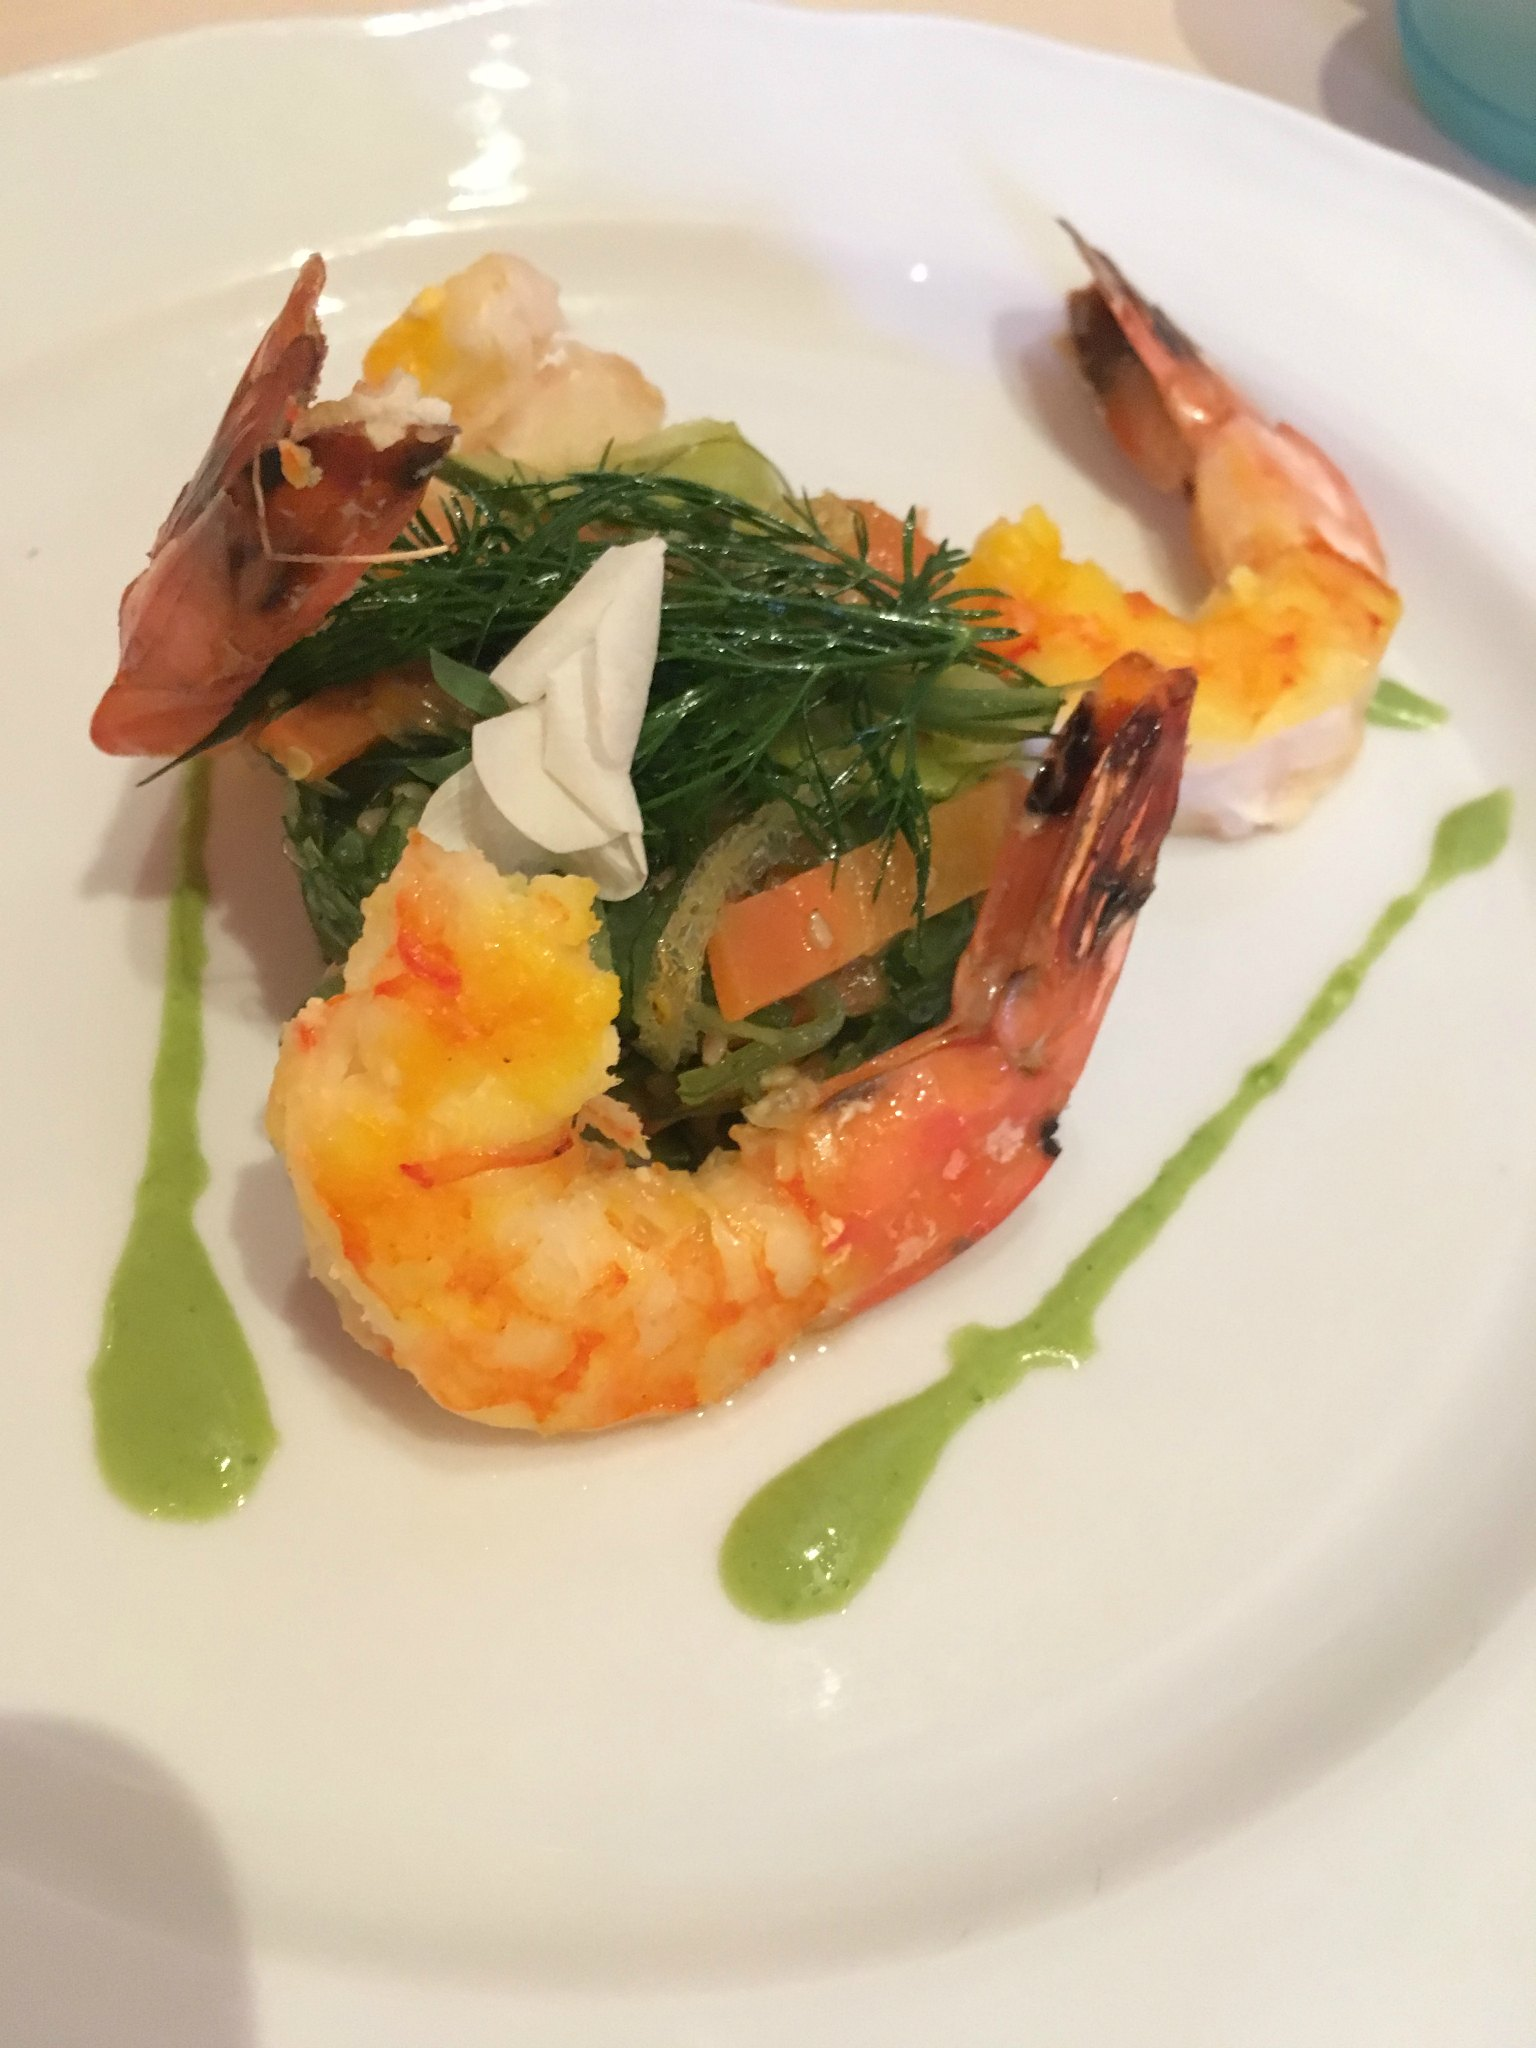 Prawn starter at Auberge de Cendrillon Disneyland Paris